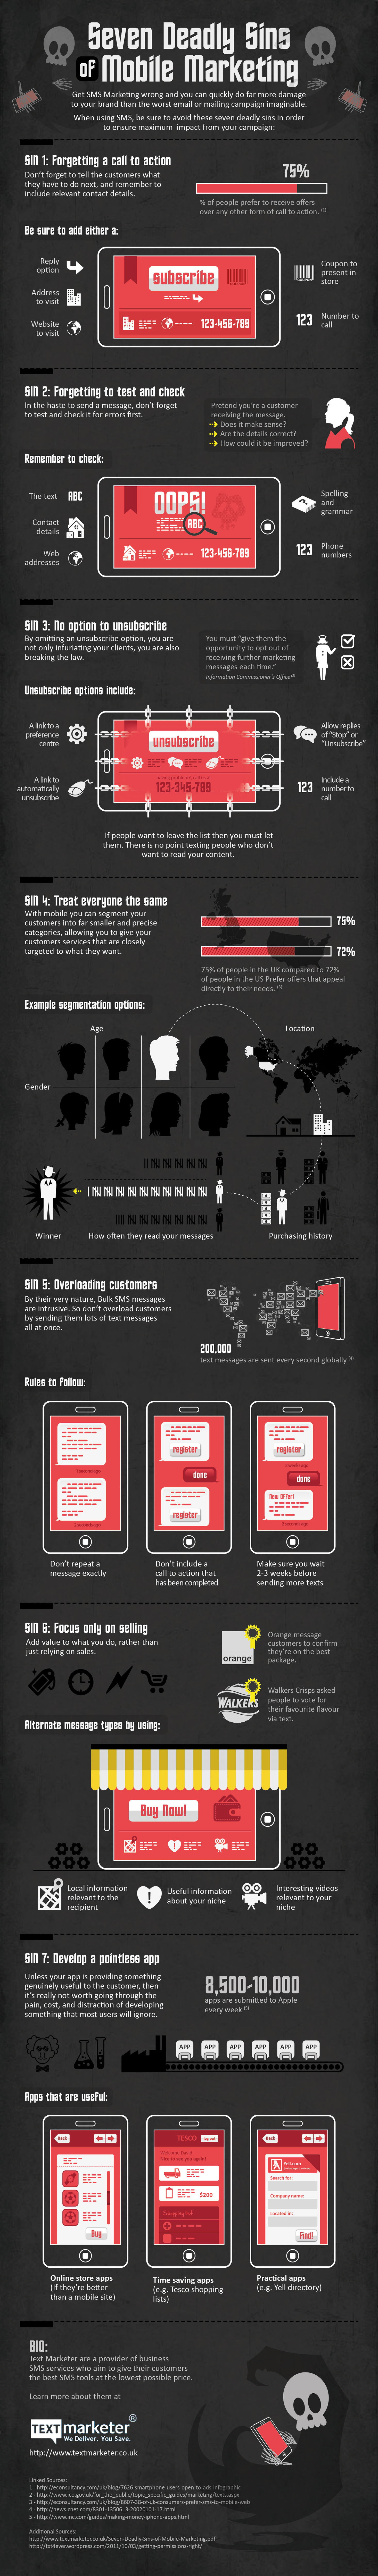 7 Deadly Sins Of Mobile Marketing Infographic